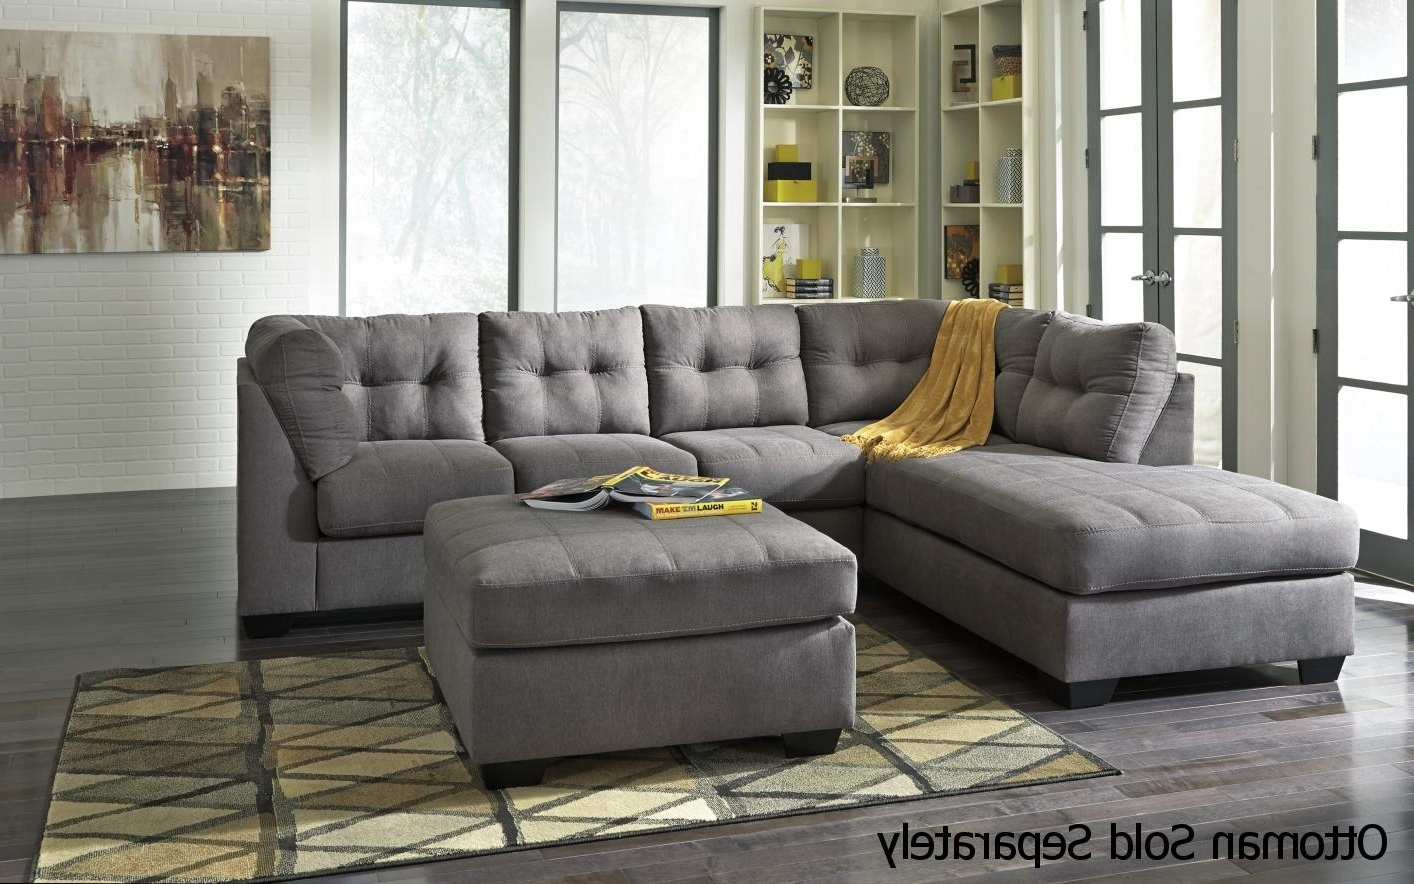 Fashionable Gray Sectional Sofa Plus Also Fabric Sectional Sofas Plus Also In Light Grey Sectional Sofas (View 2 of 15)